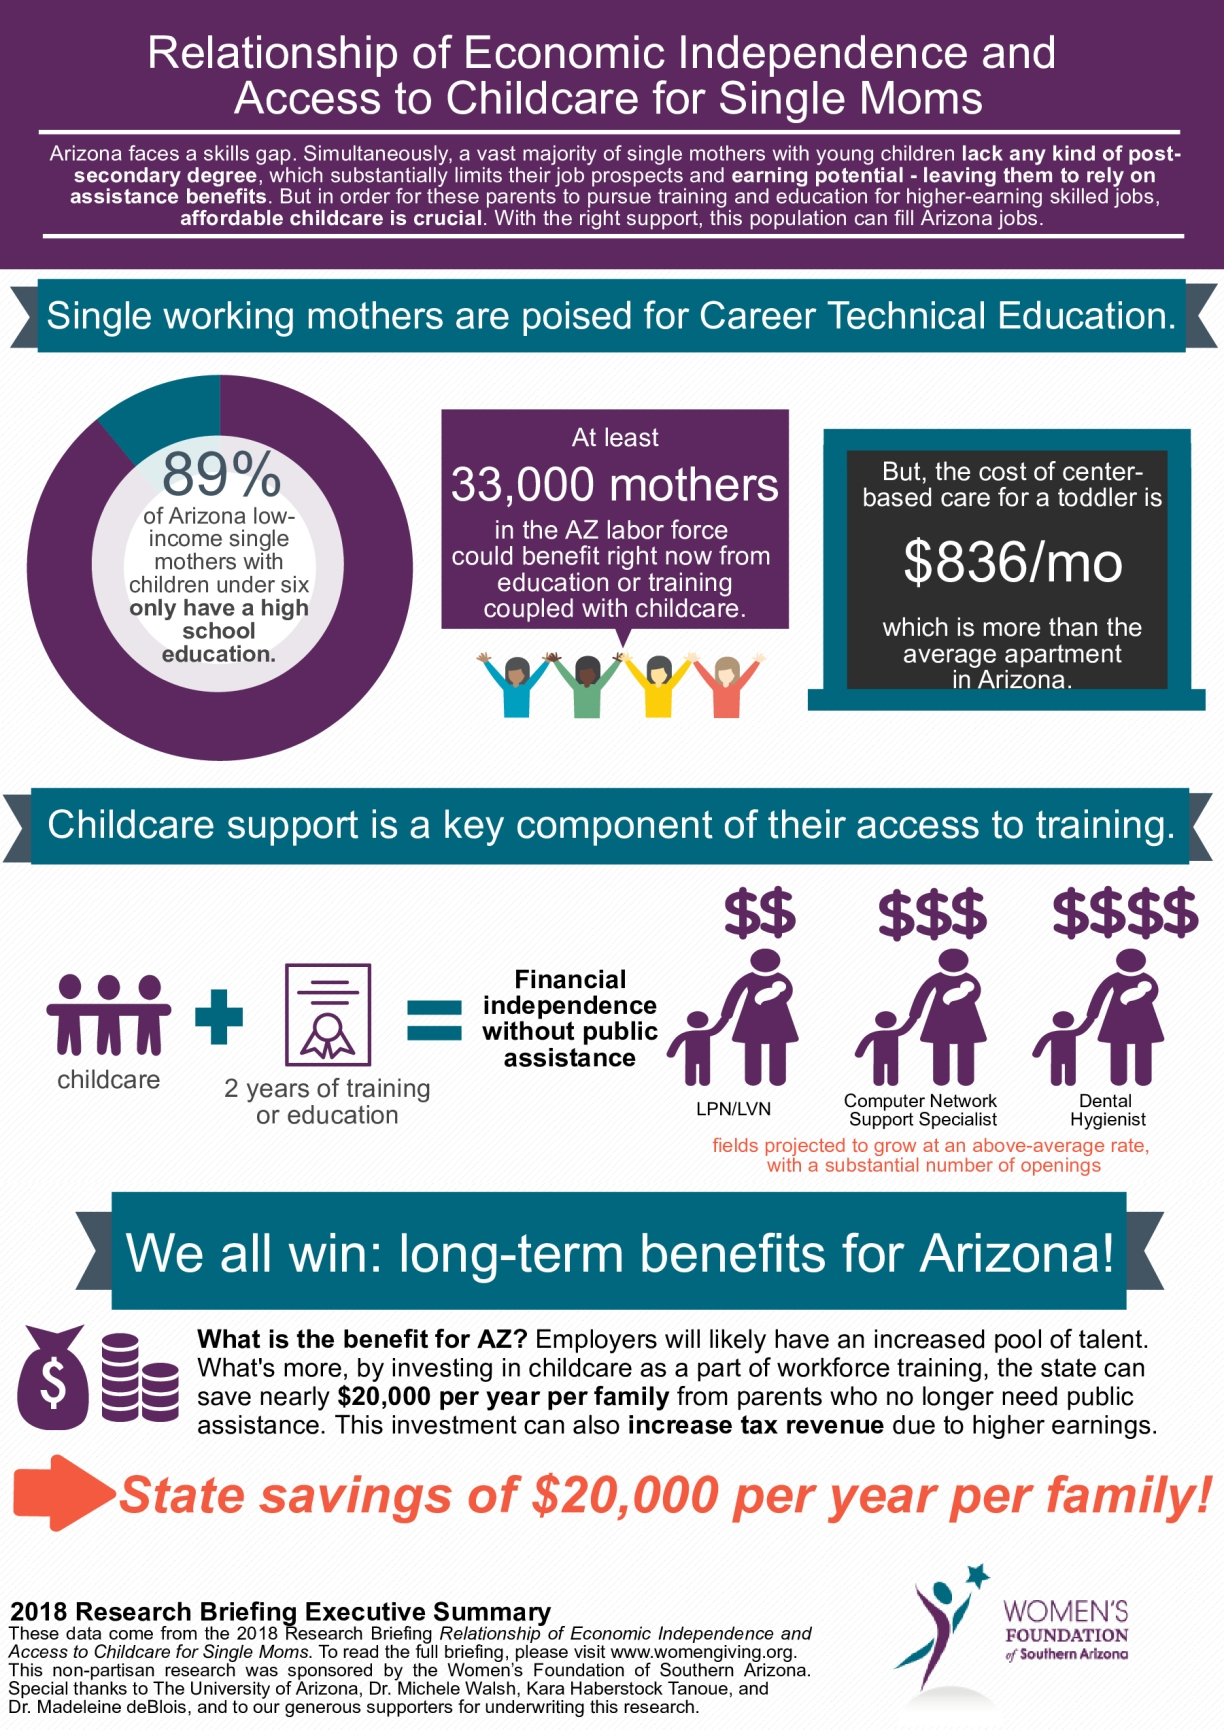 Relationship of Economic Independence and Access to Childcare for Single Moms: Infographic